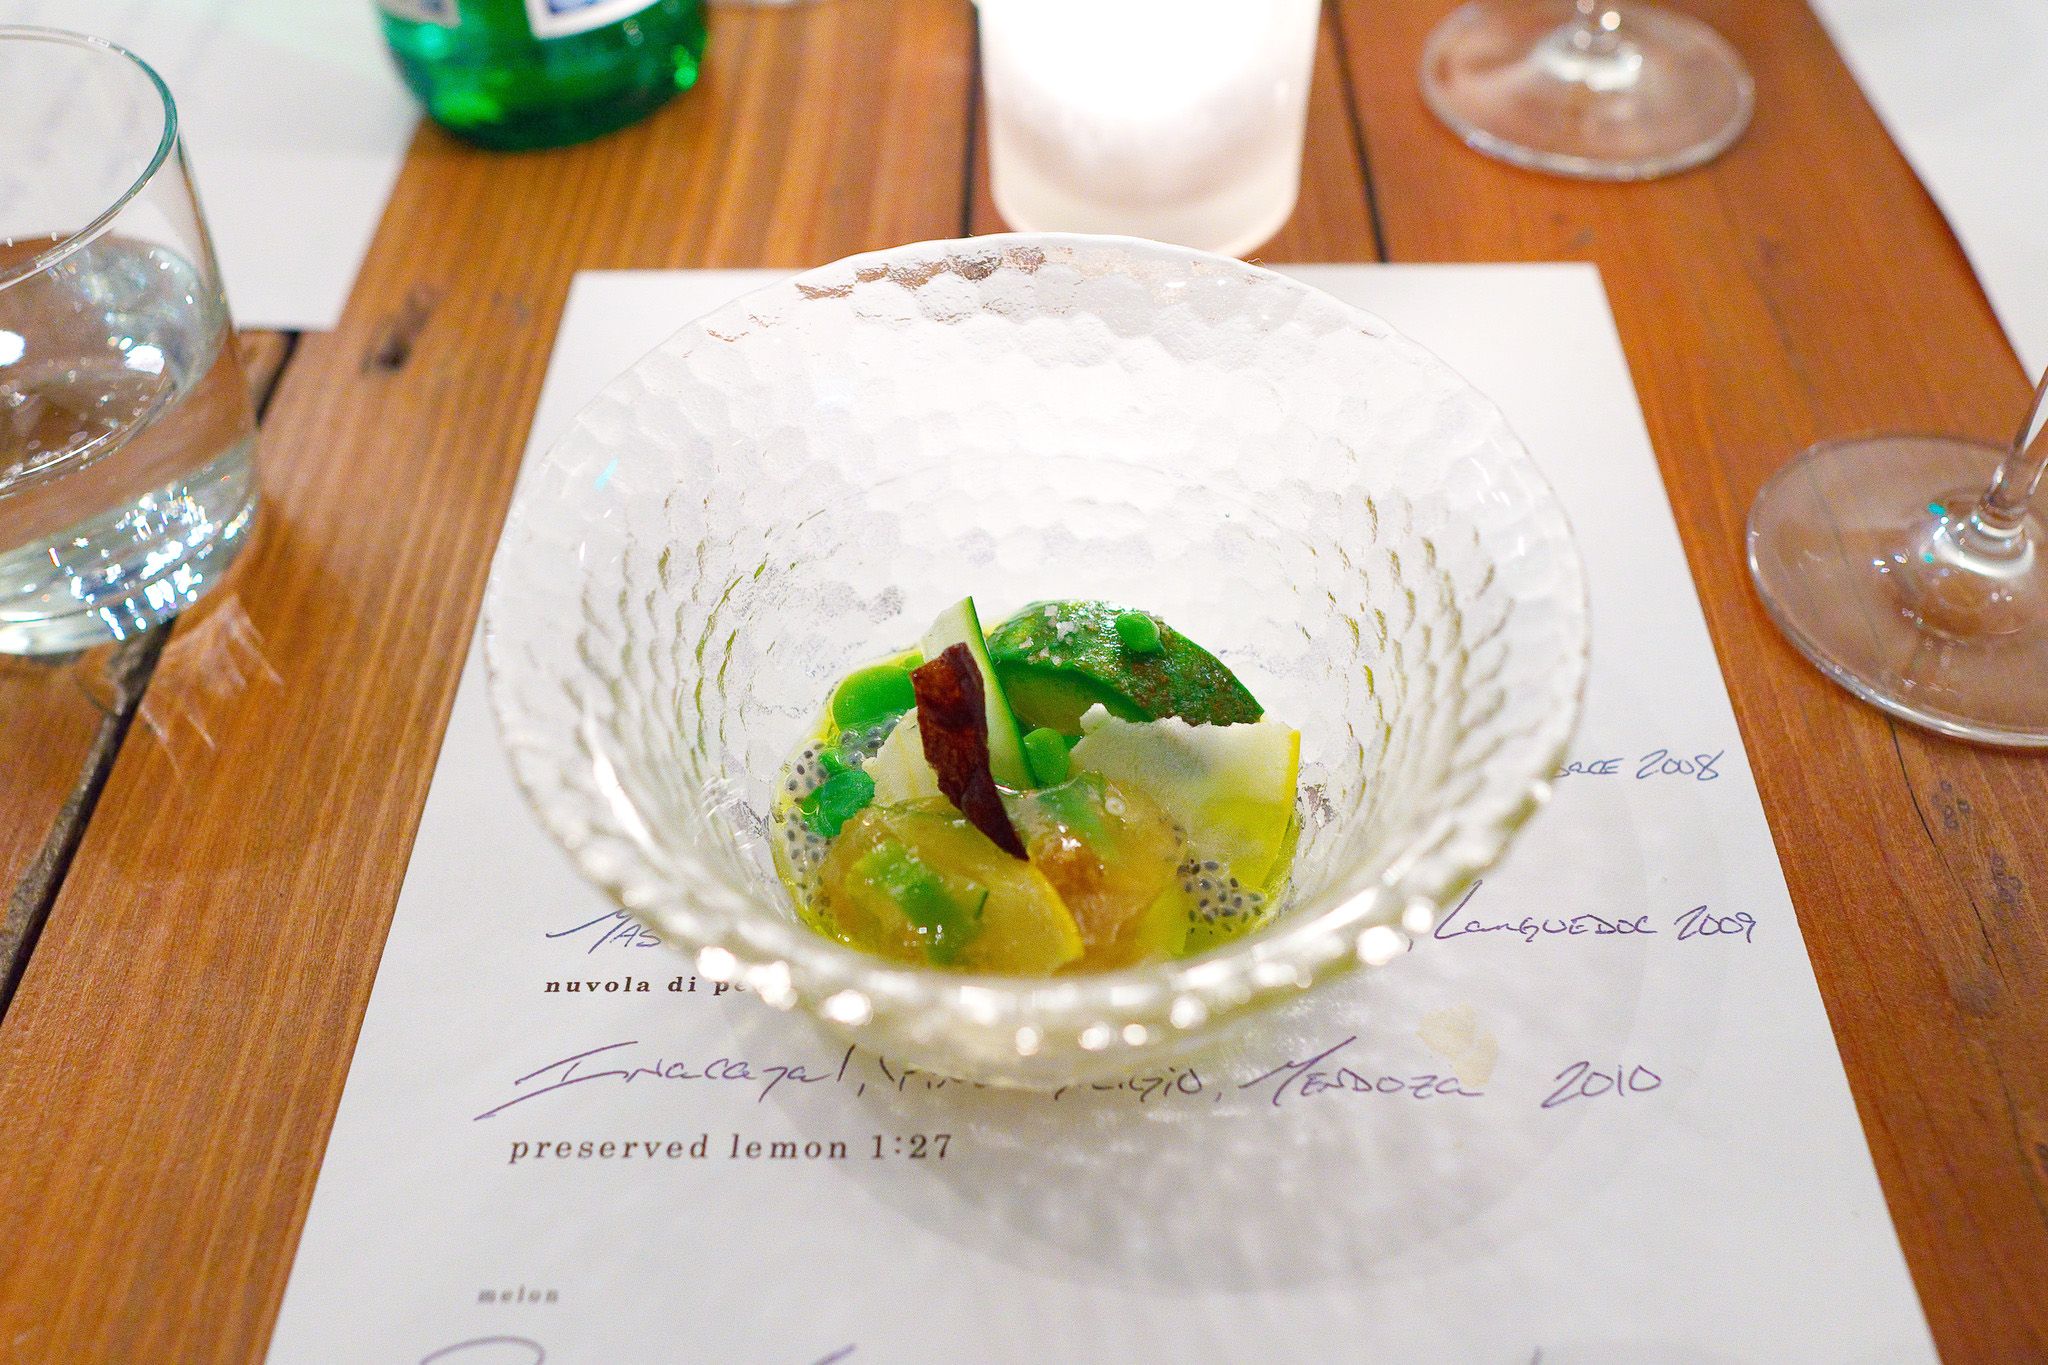 3rd Course, Vegetable aspic - Fava beans, peas, zucchini & squash, eggplant roasted over the fire & a crispy chip of the skin, avocado, All bound with gelée of tomato consommé